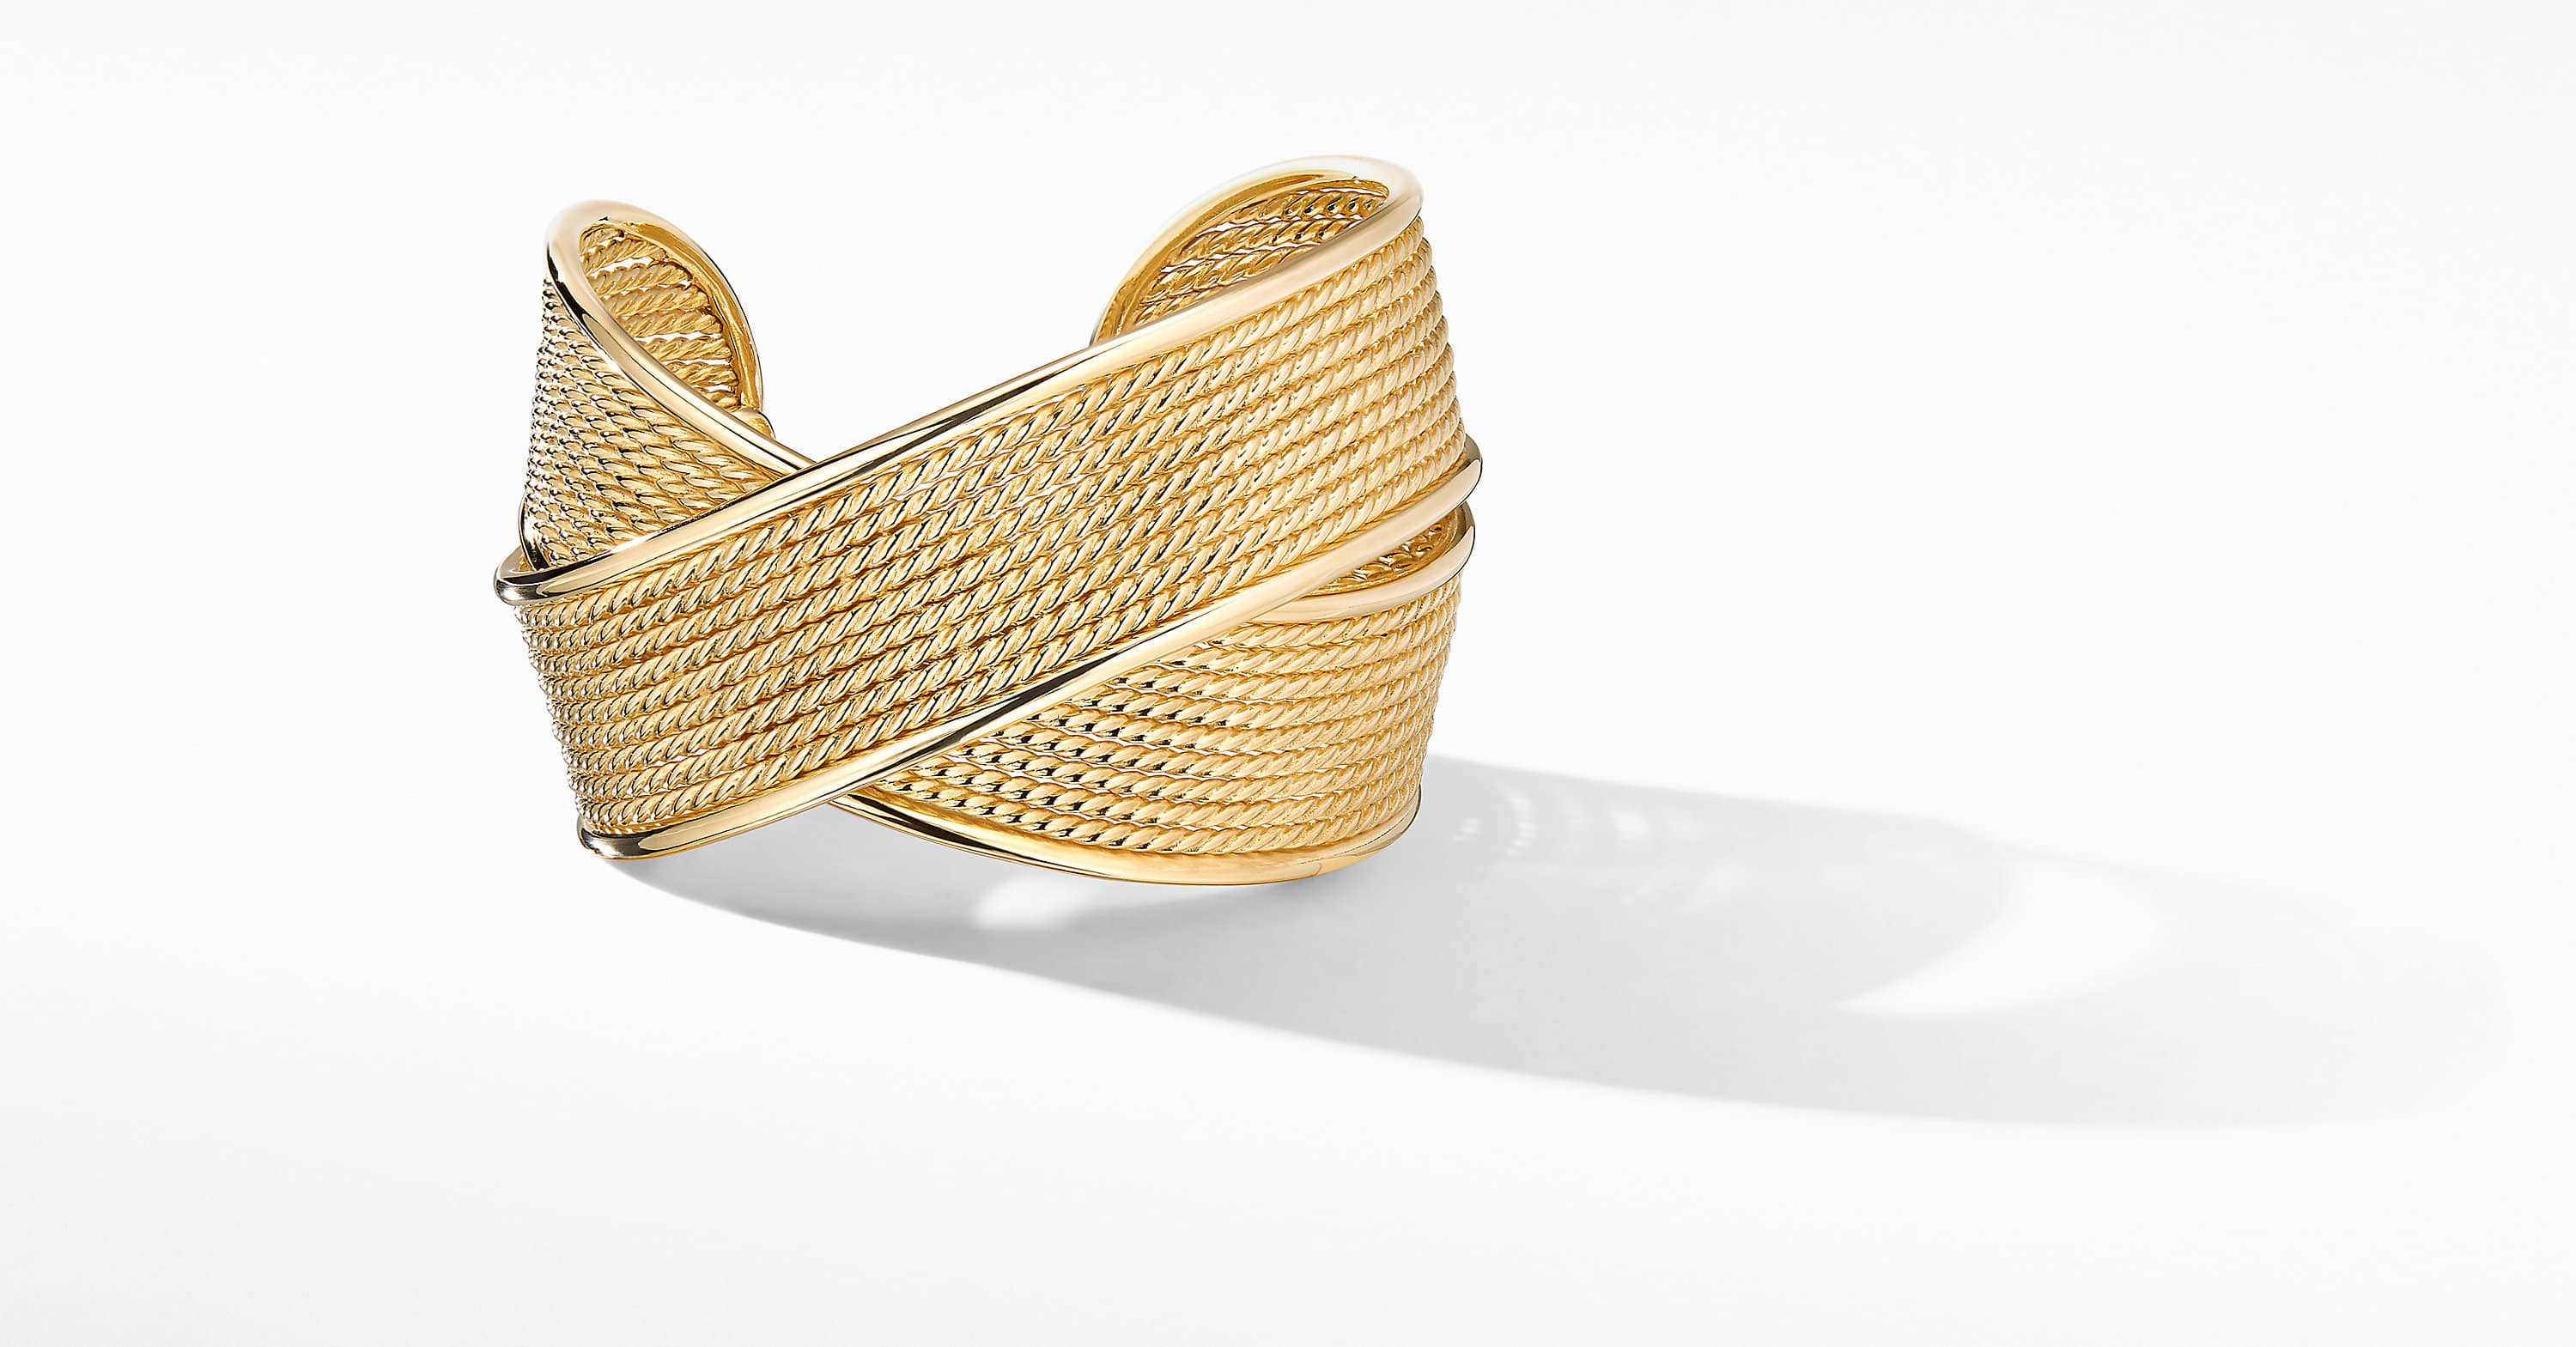 DY Origami Large Crossover Cuff Bracelet in 18K Yellow Gold